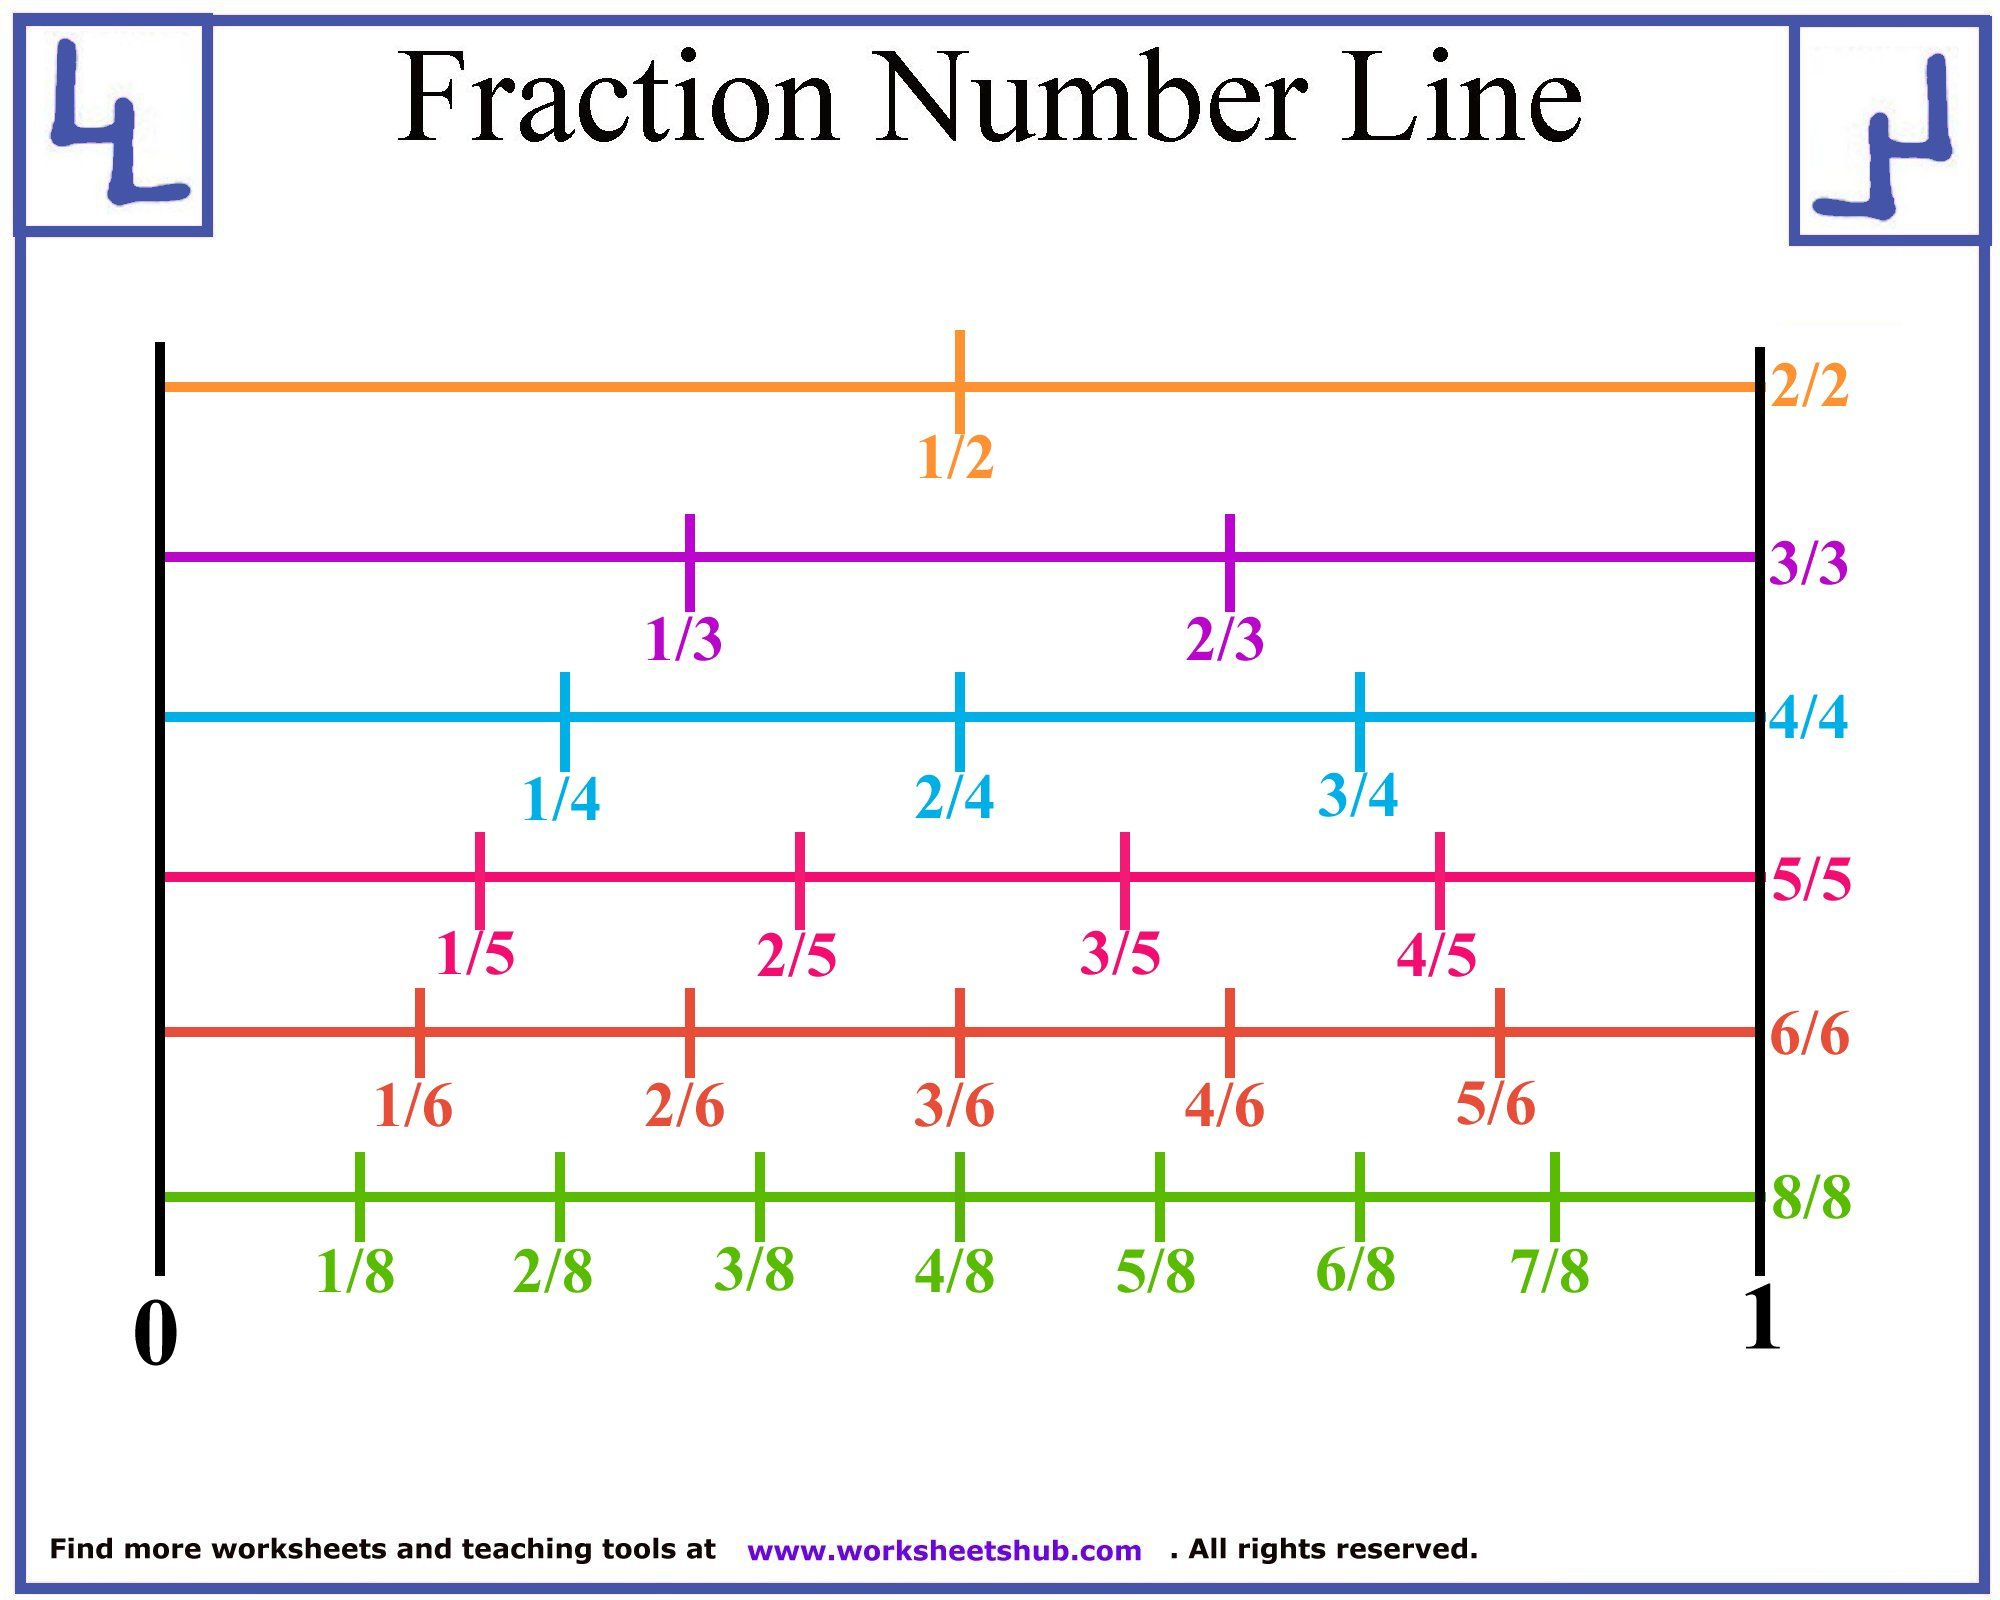 Fraction Number Line 2 In